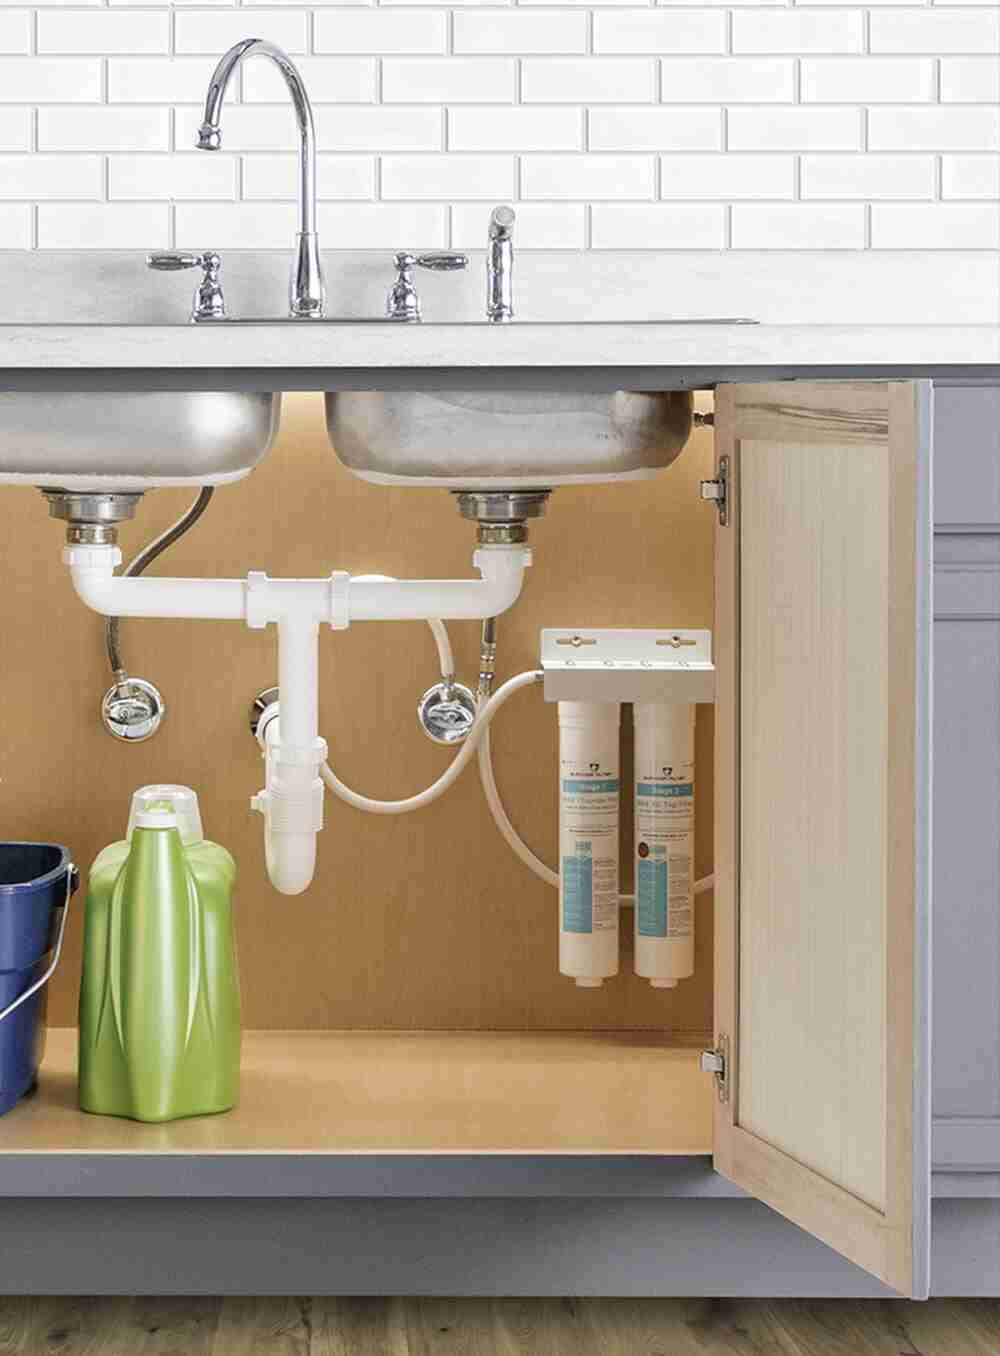 Clean, homebody enthusiast MAX, 2-Stage Home Filter